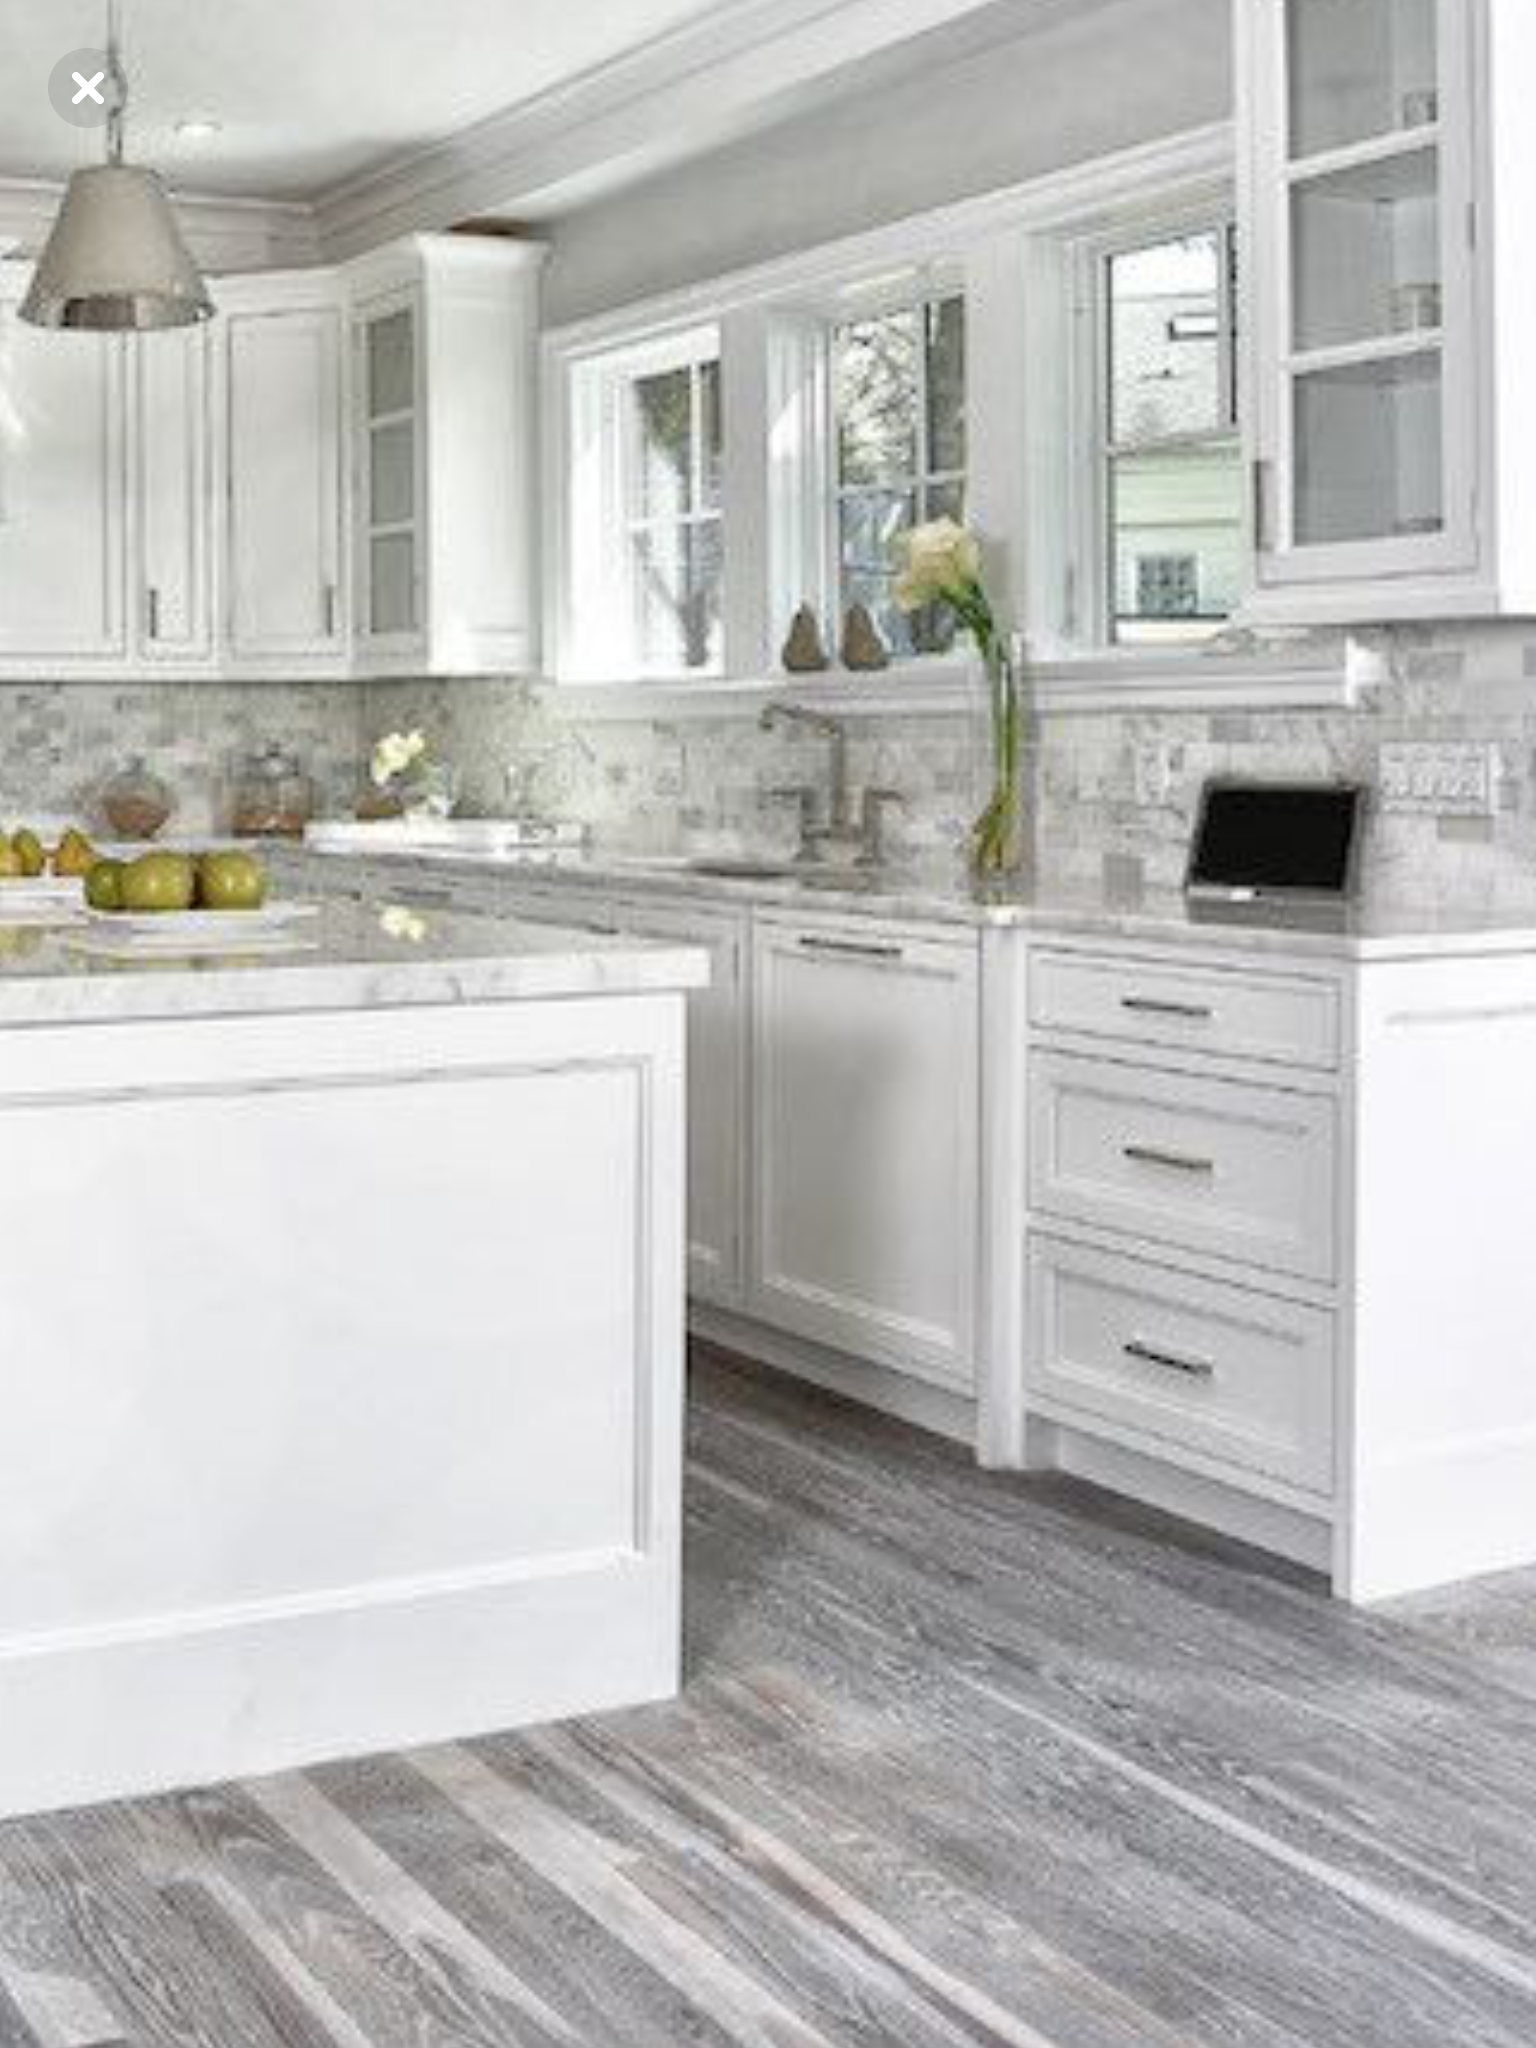 Grey Floors White Cabinets Grey Kitchen Walls Grey Kitchen Walls White Cabinets Grey Flooring